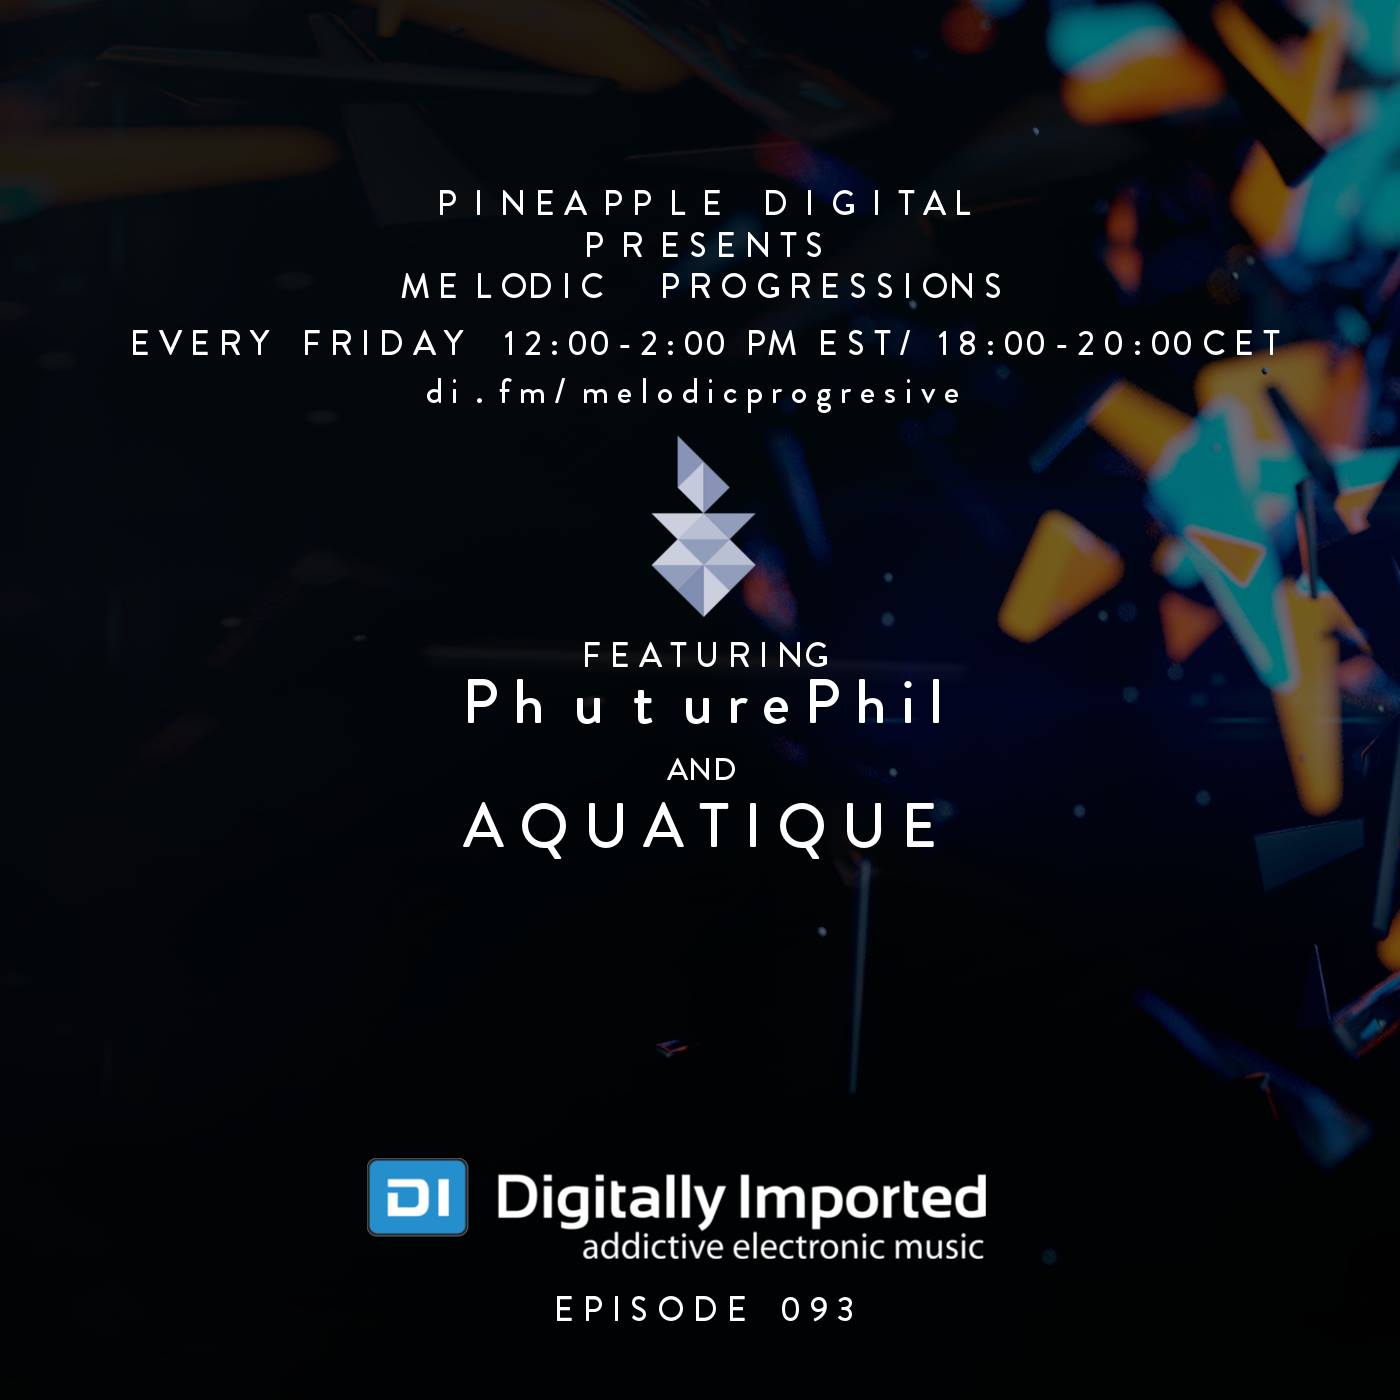 PhuturePhil Special Guest Host PD Melodic Progressive Sessions 093 Feb. 2016